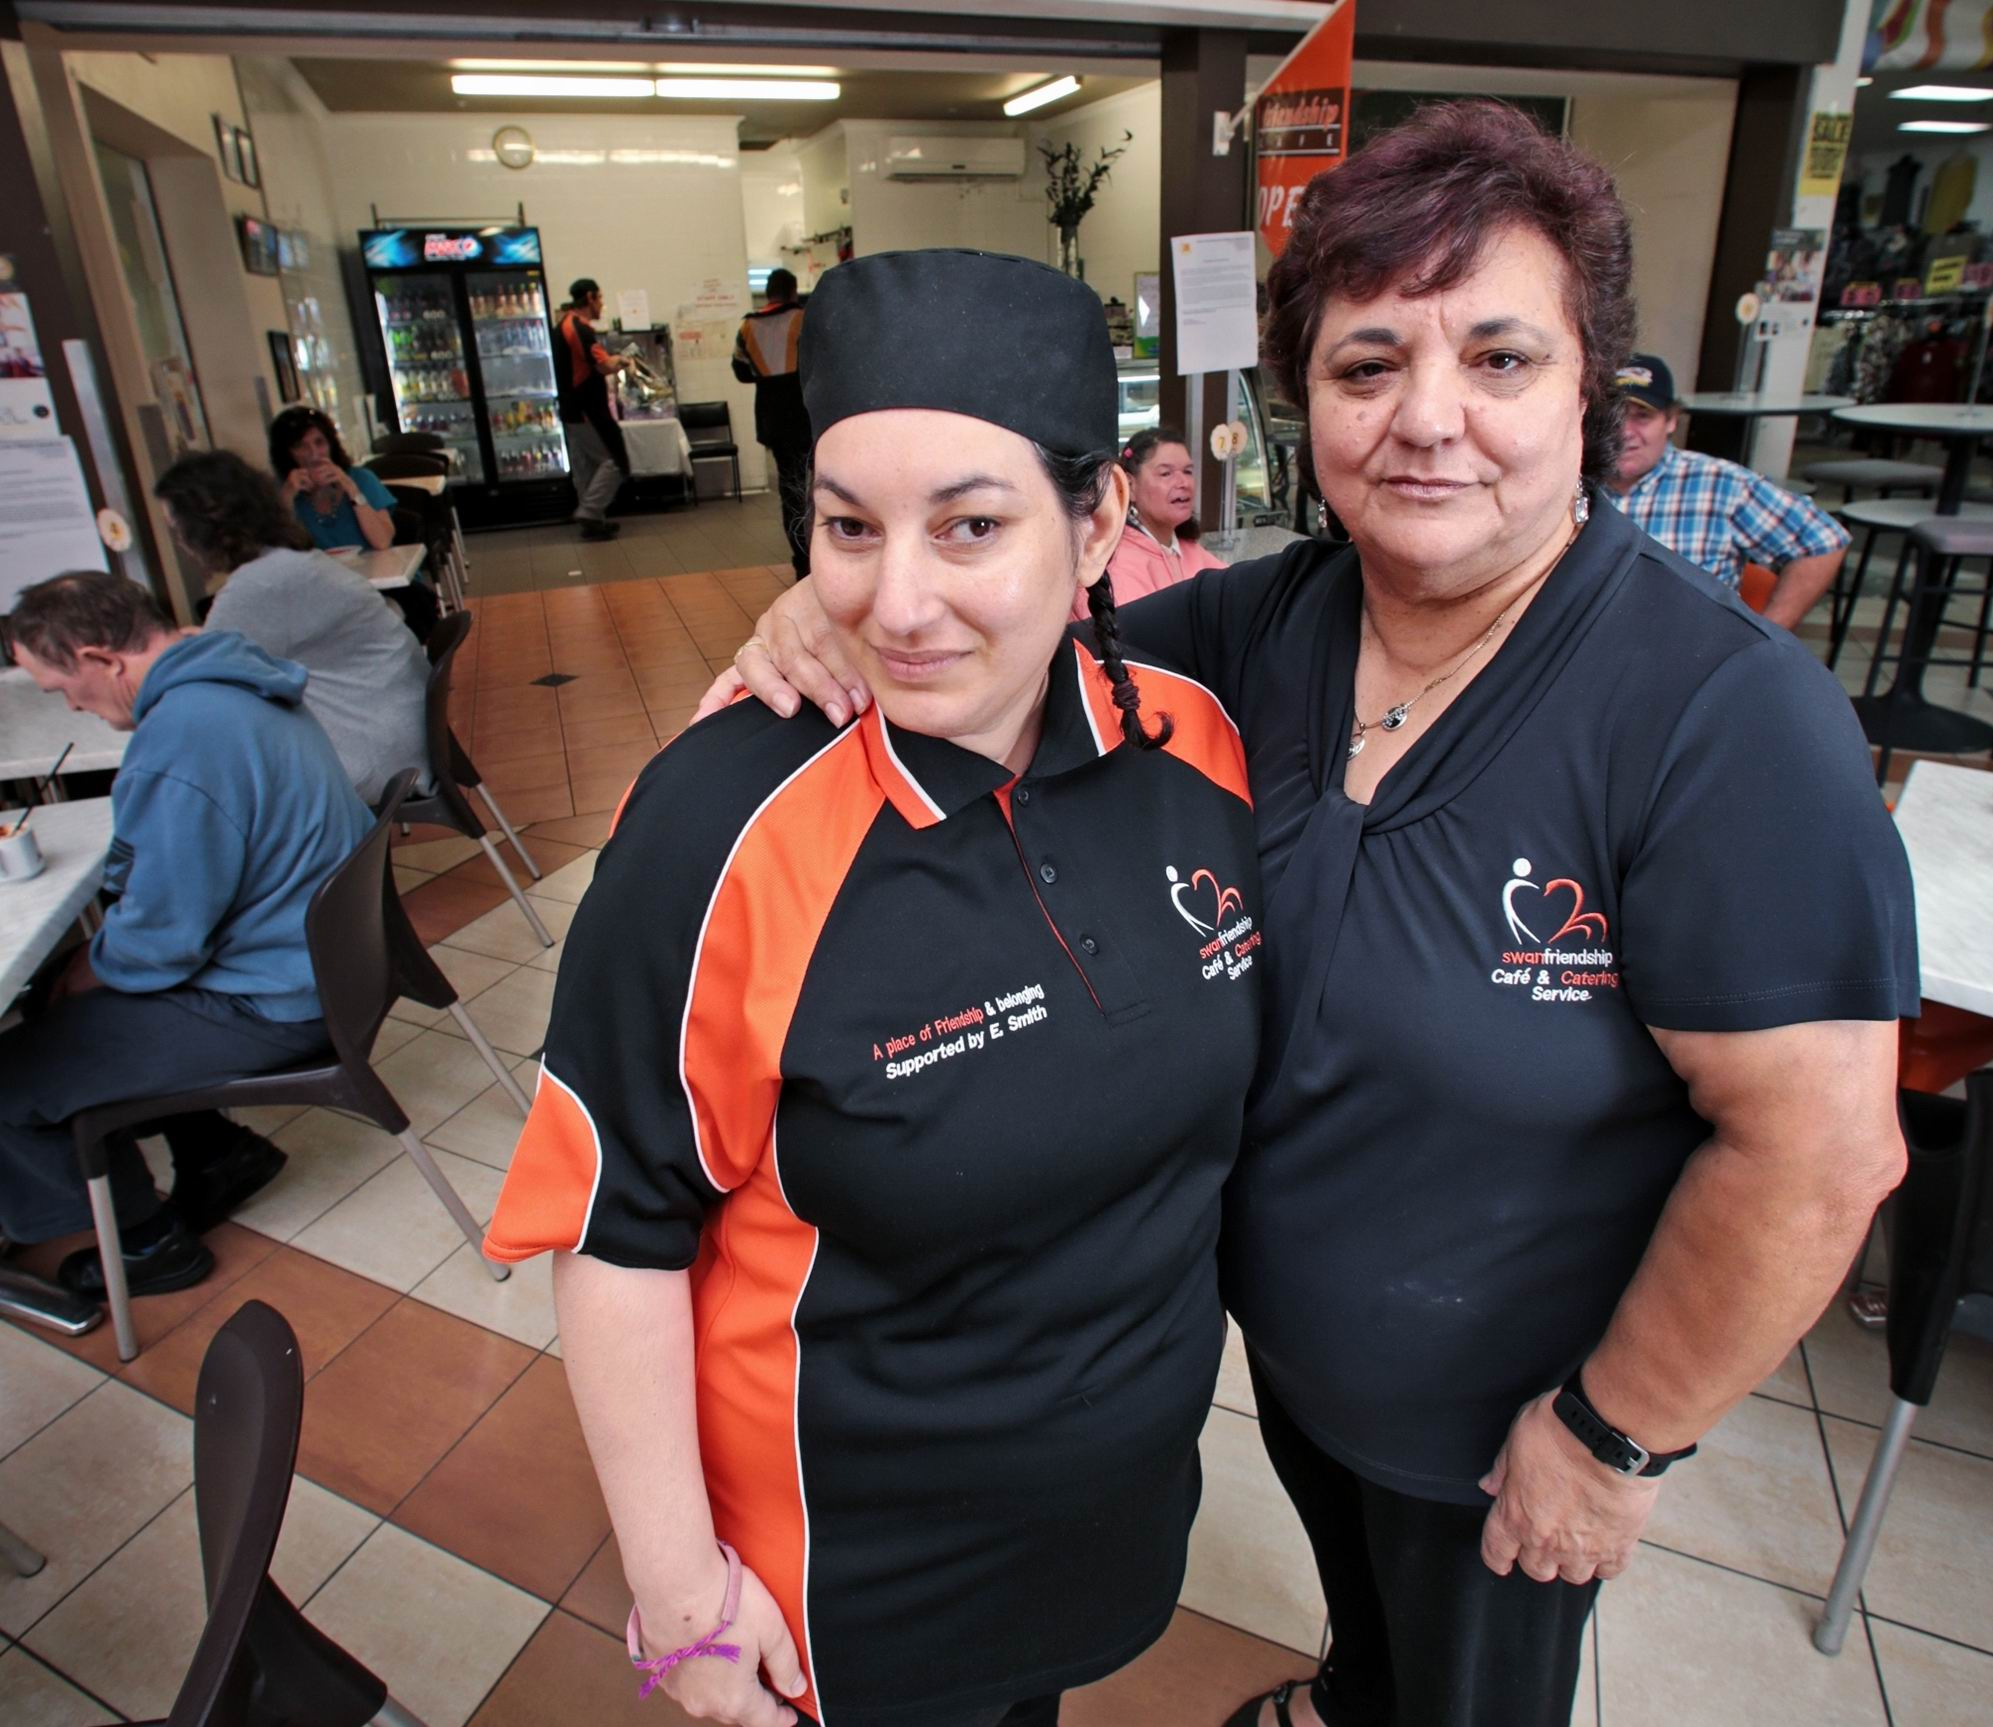 Swan Friendship Cafe: fundraising efforts to help get club back on feet